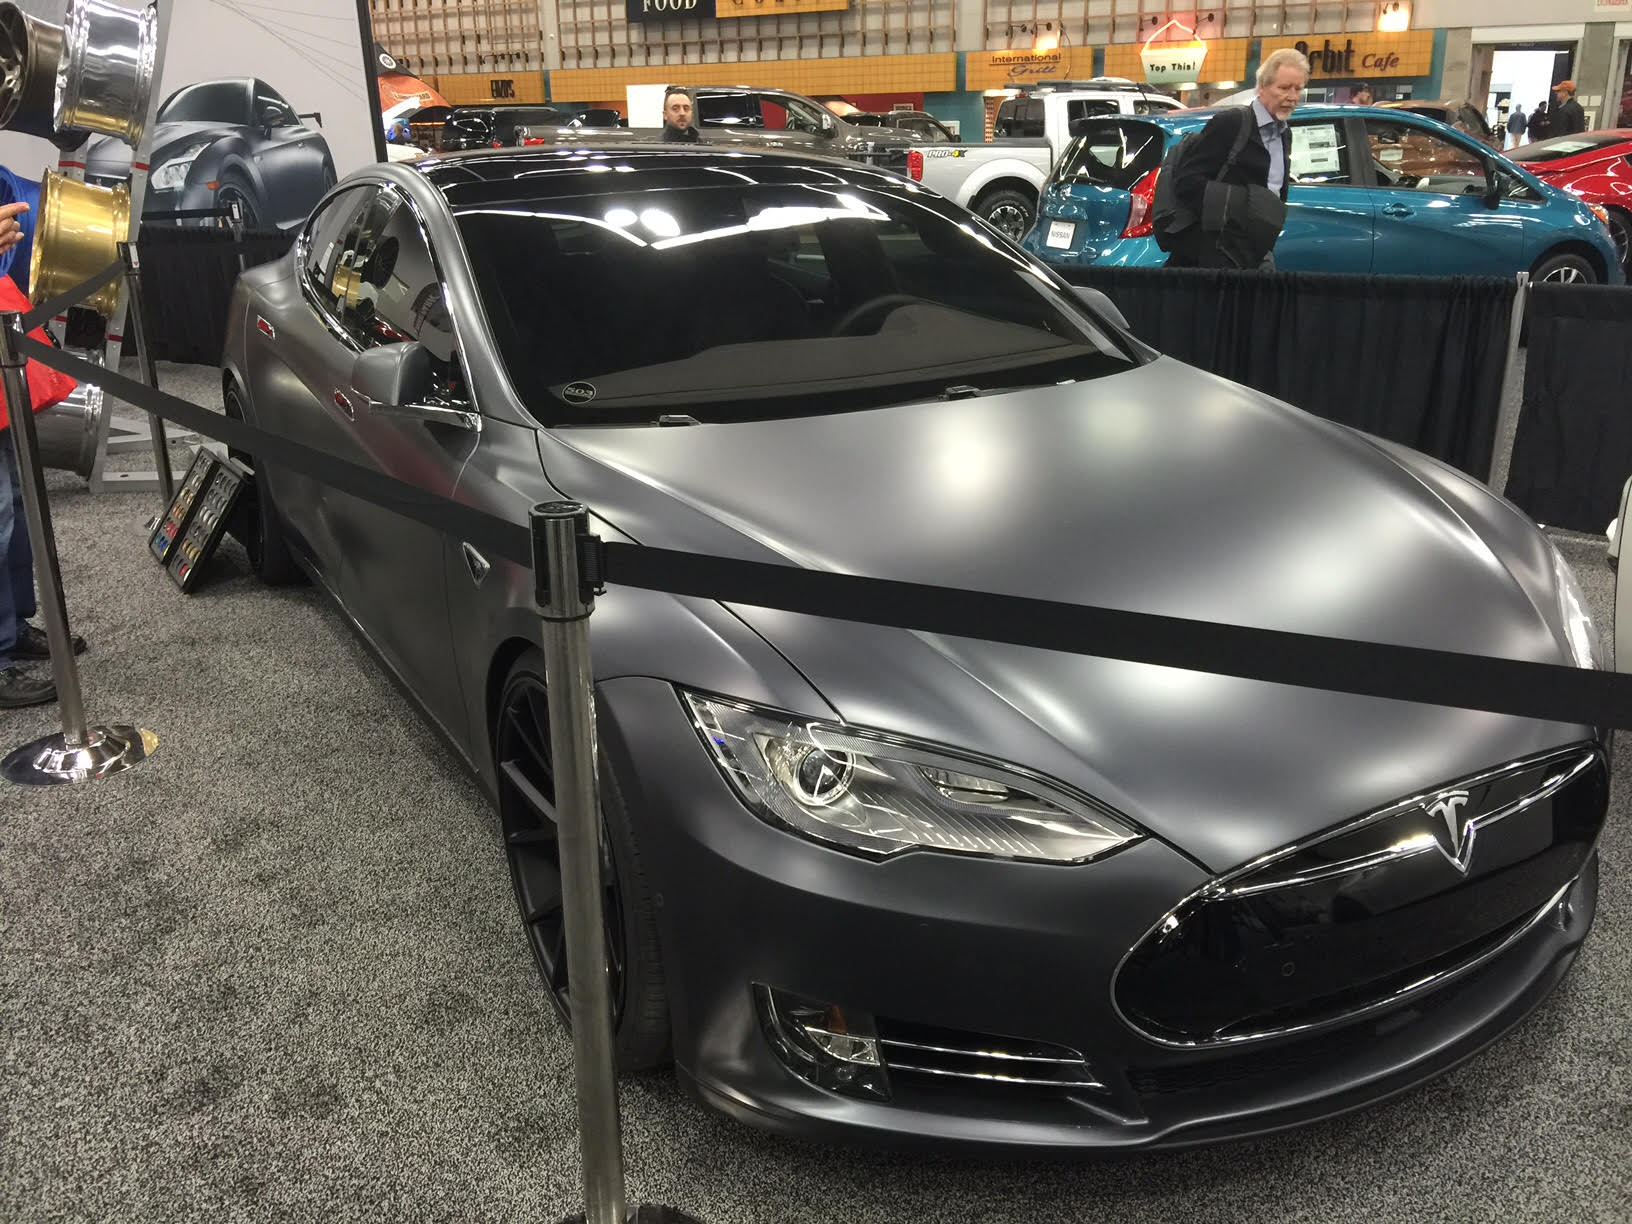 Tesla Model S tricked out by 503 Motoring at the Portland Auto